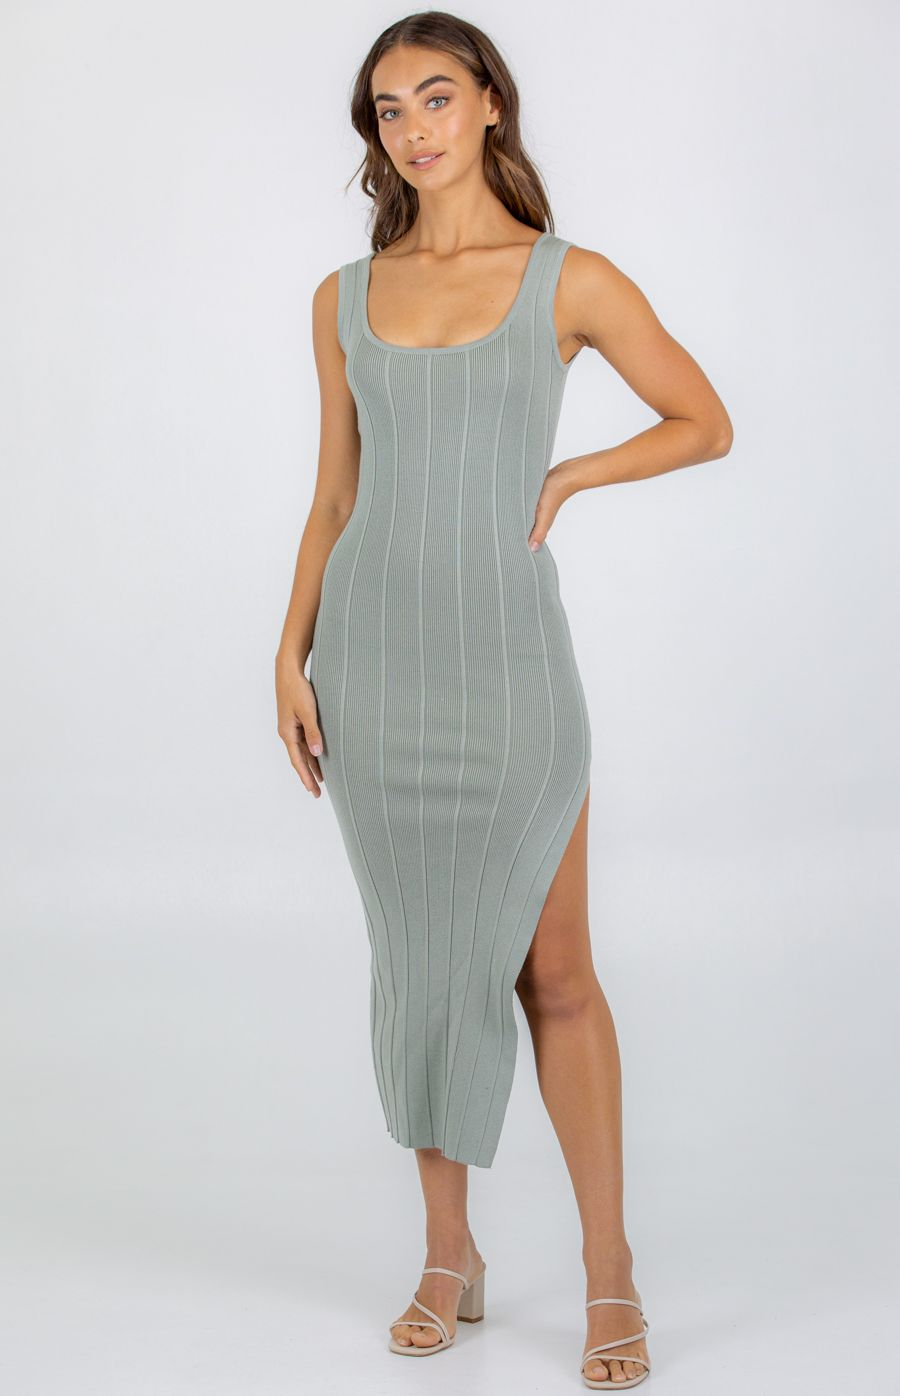 Wide Rib Textured Knit Dress With Side Split - Sage